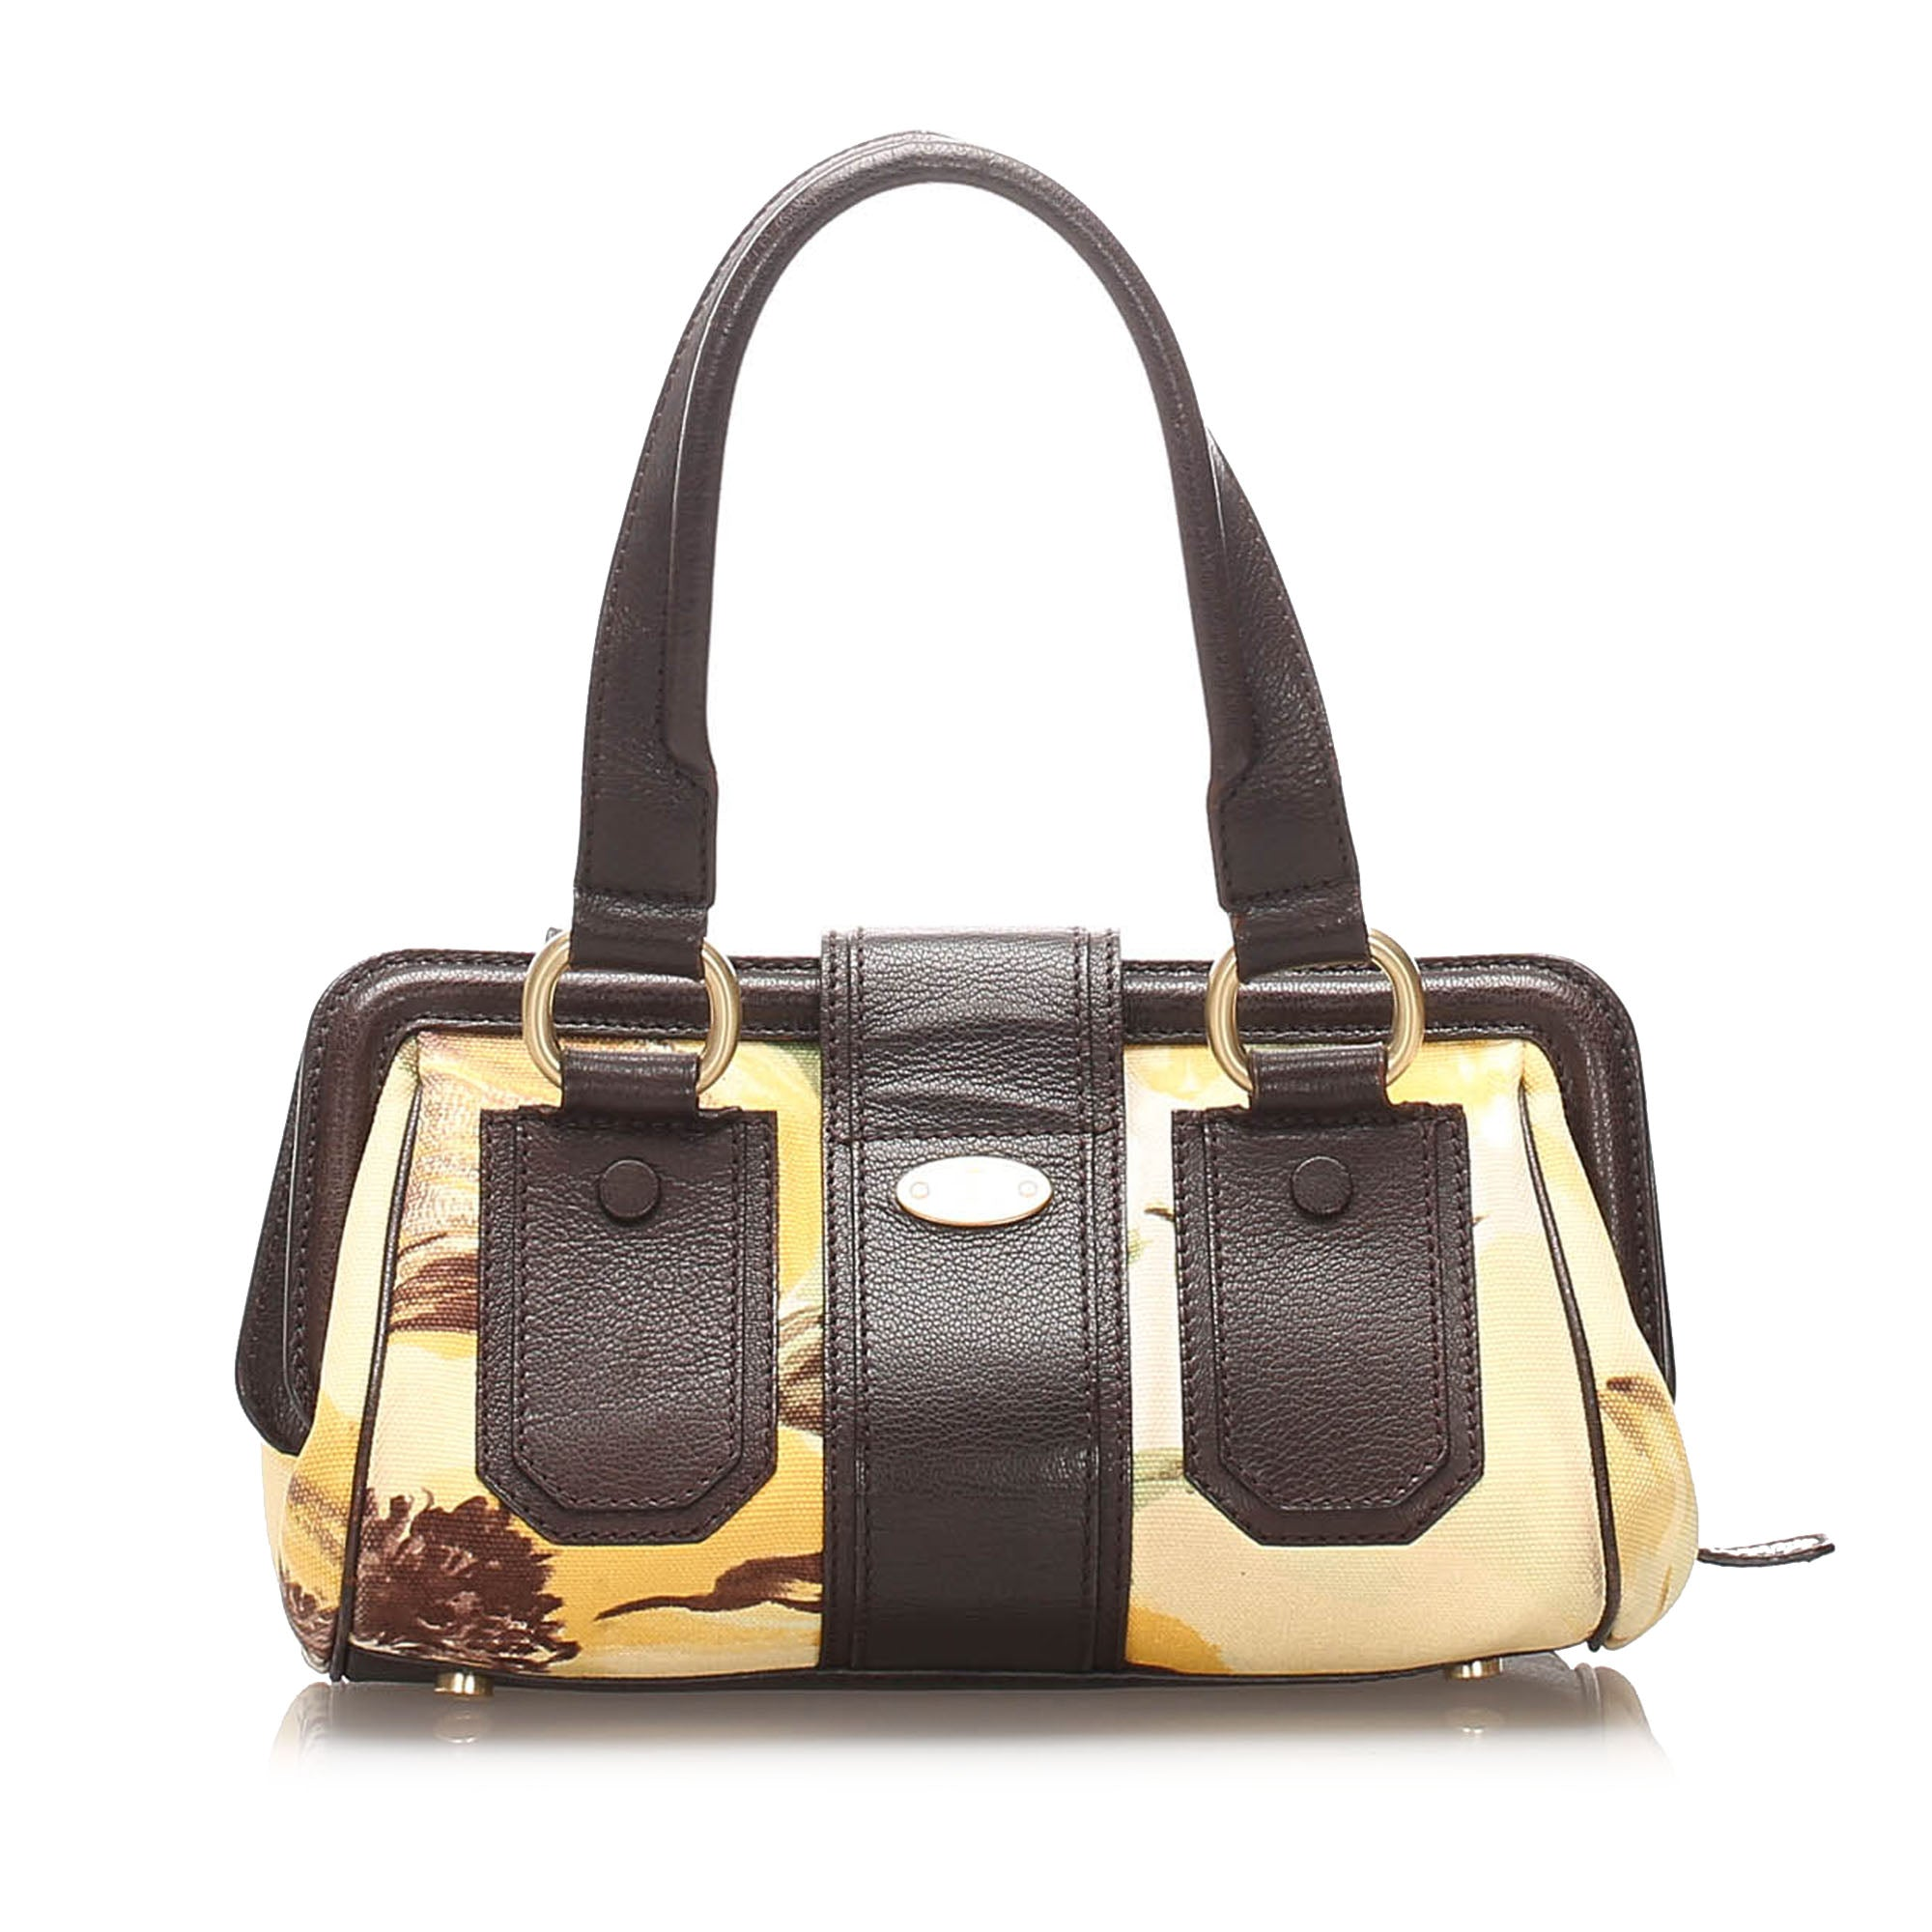 Celine Brown Canvas Handbag